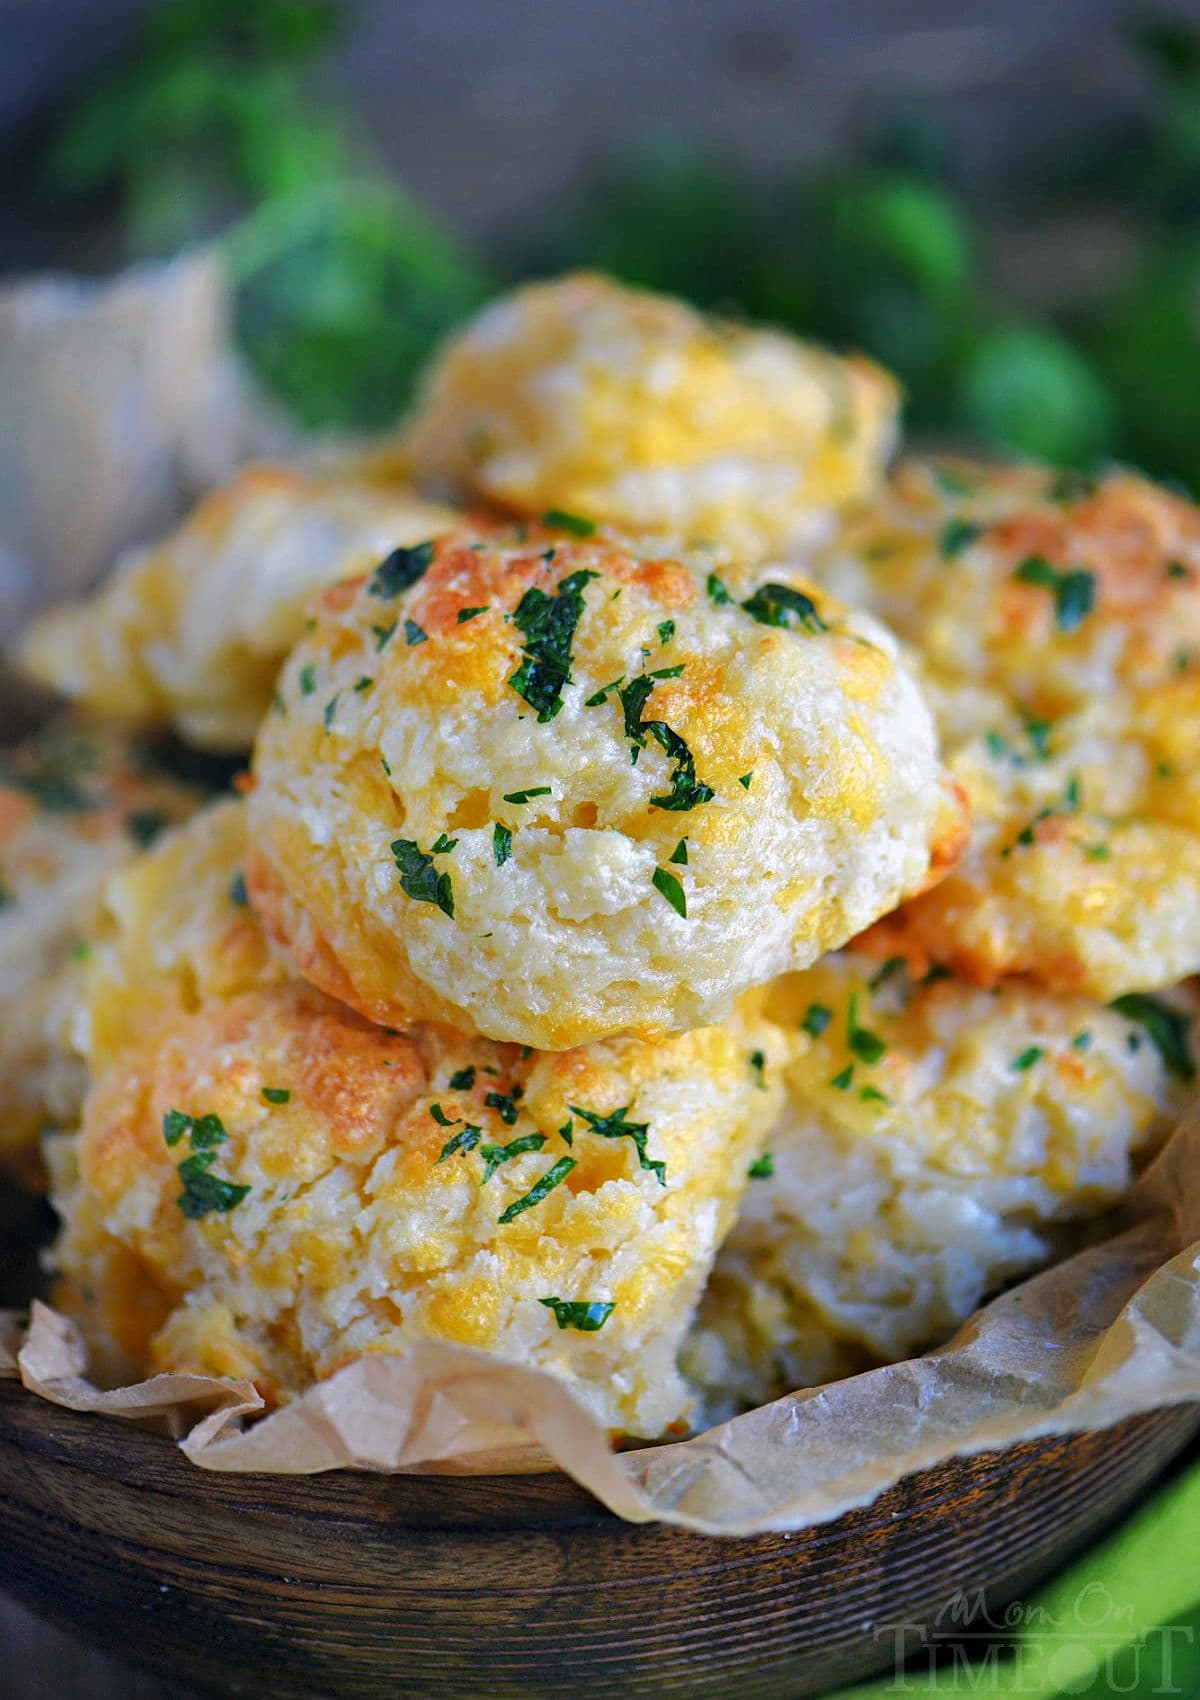 wood bowl filled with cheesy cheddar bay biscuits topped with a garlic herb butter.